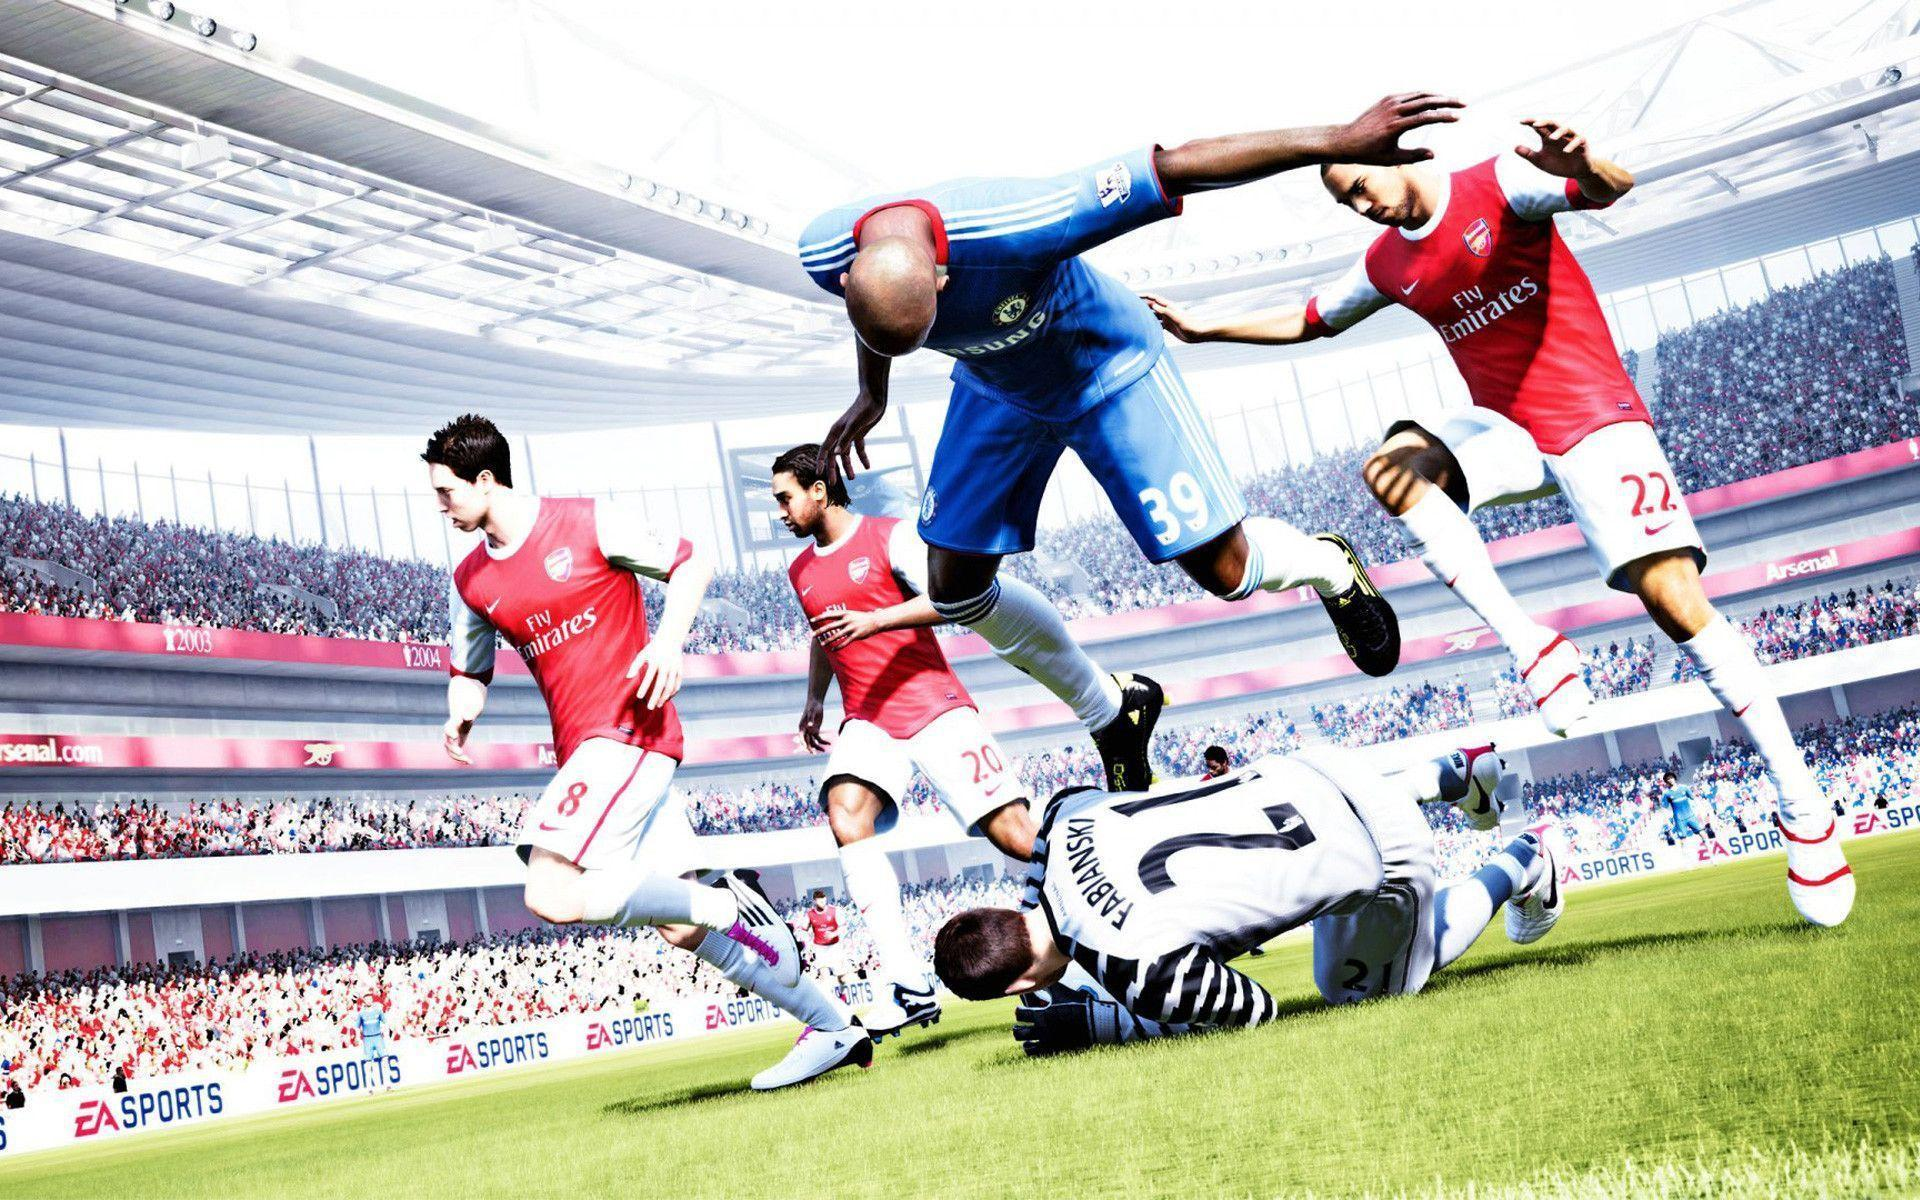 Fifa Wallpapers - Full HD wallpaper search